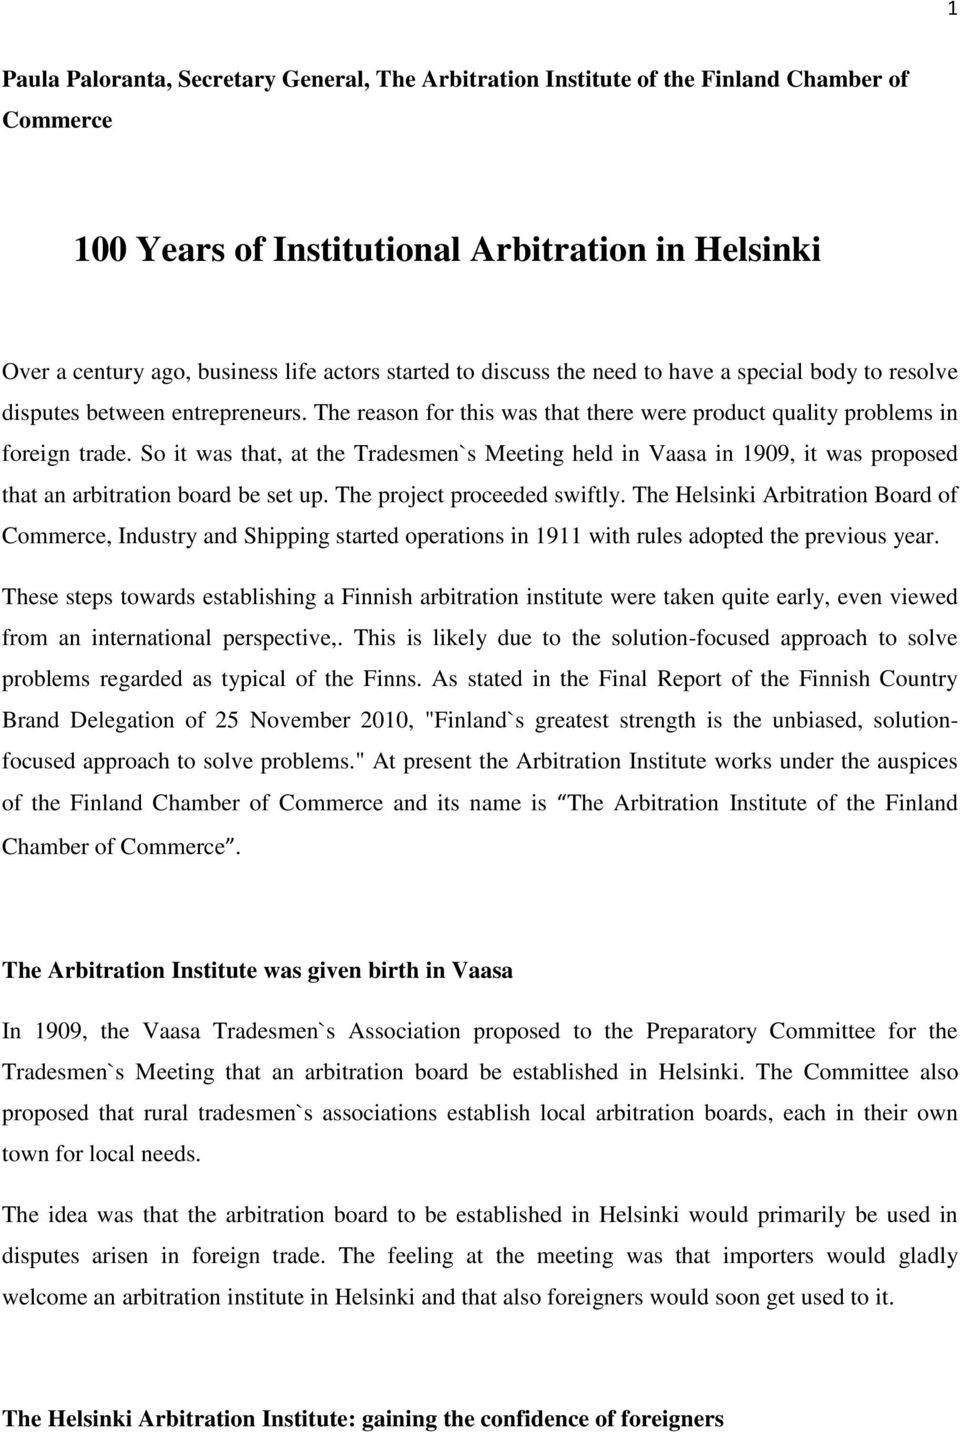 So it was that, at the Tradesmen`s Meeting held in Vaasa in 1909, it was proposed that an arbitration board be set up. The project proceeded swiftly.